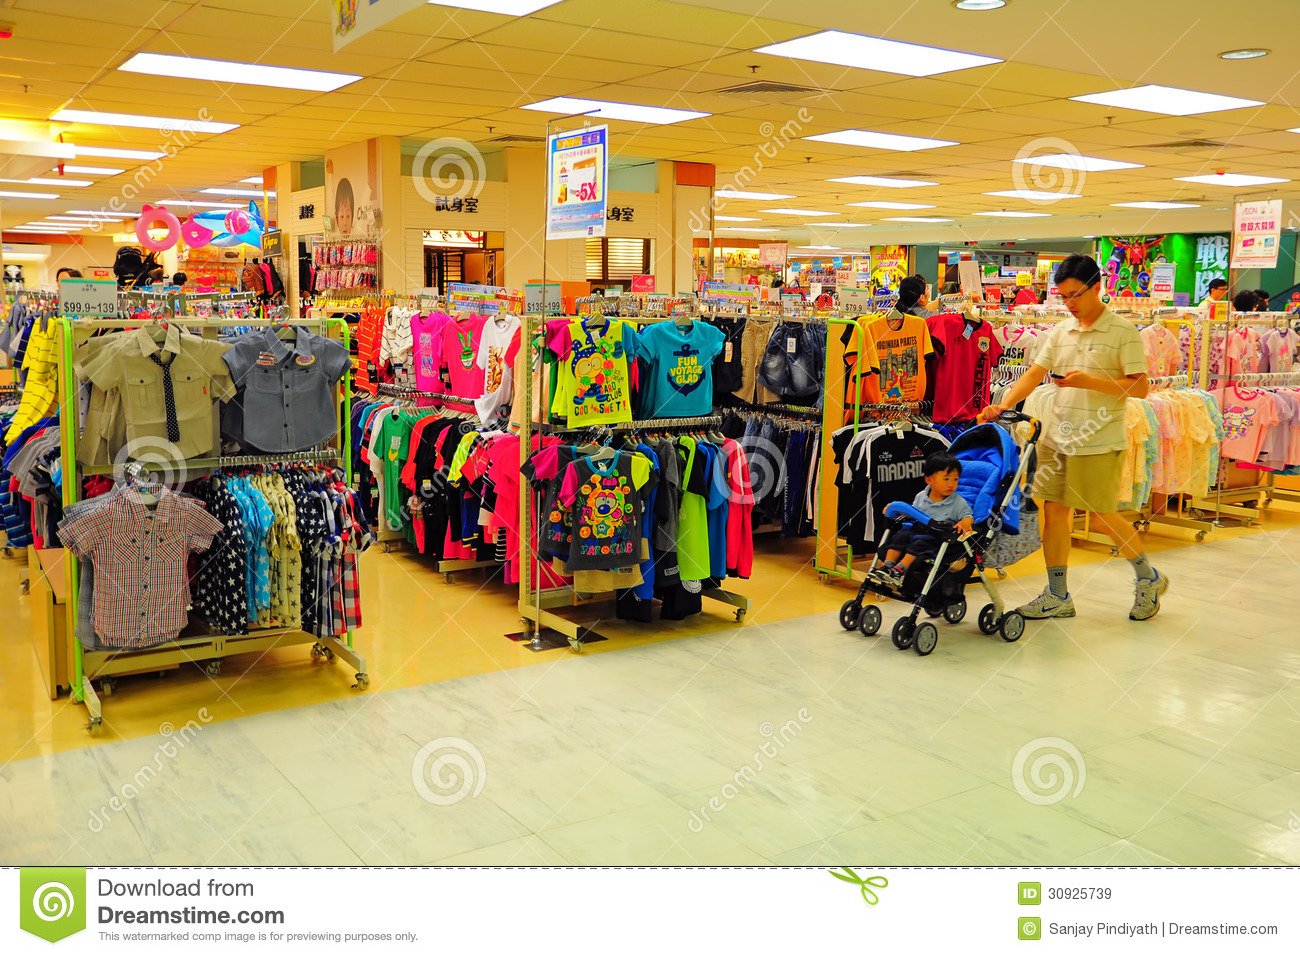 Clothing stores online Best clothing stores for kids